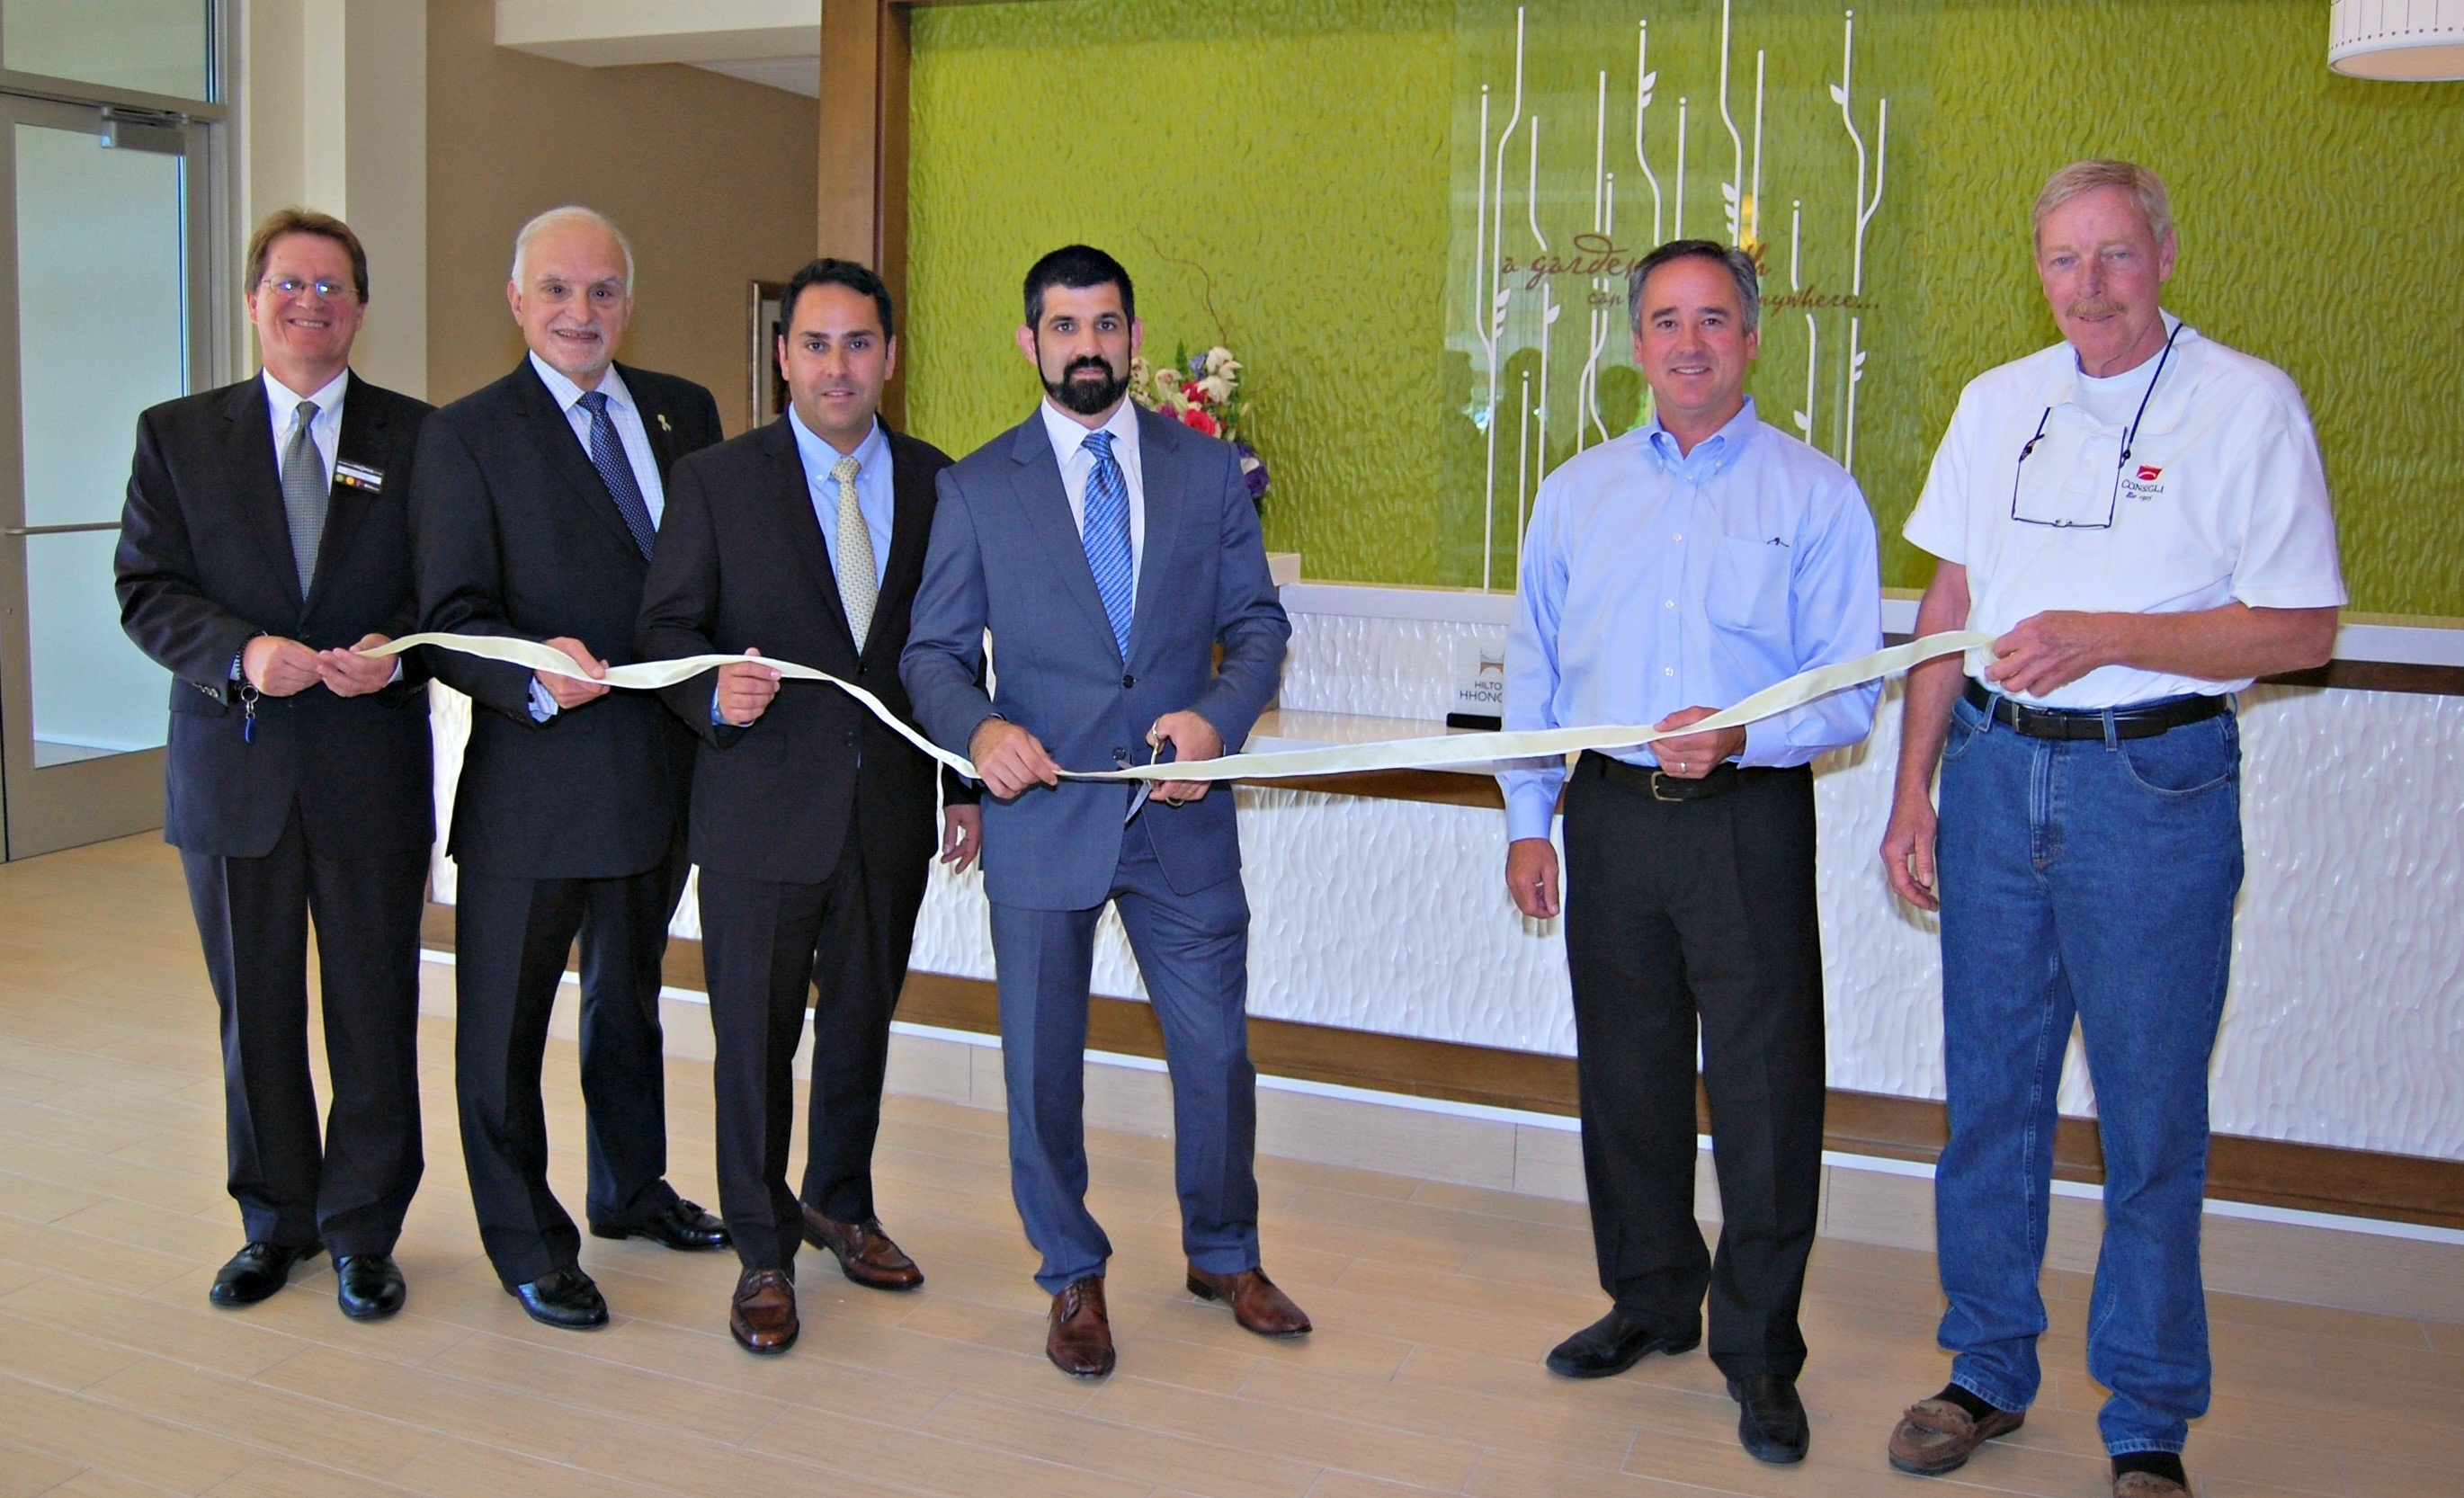 Ribbon-cutting Consigli Completes Construction of Hilton Garden Inn Boston Logan Airport